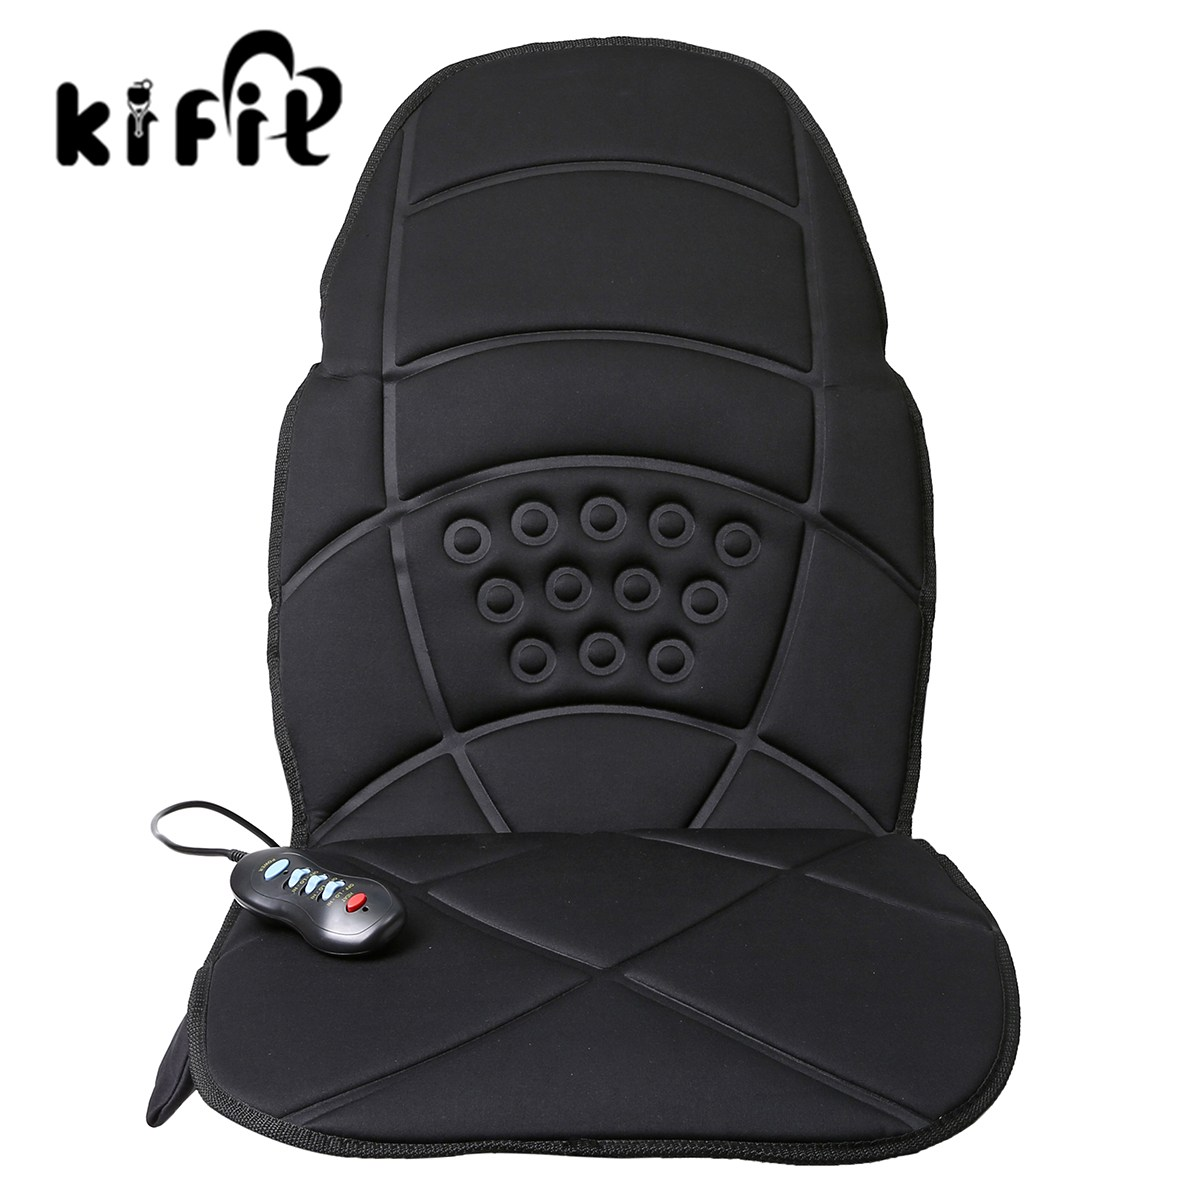 KIFIT Practical Heated Back Massage Chair Cushion Massager Car Seat Home Pad Pain Lumbar Neck Health Care Tool 240337 ergonomic chair quality pu wheel household office chair computer chair 3d thick cushion high breathable mesh